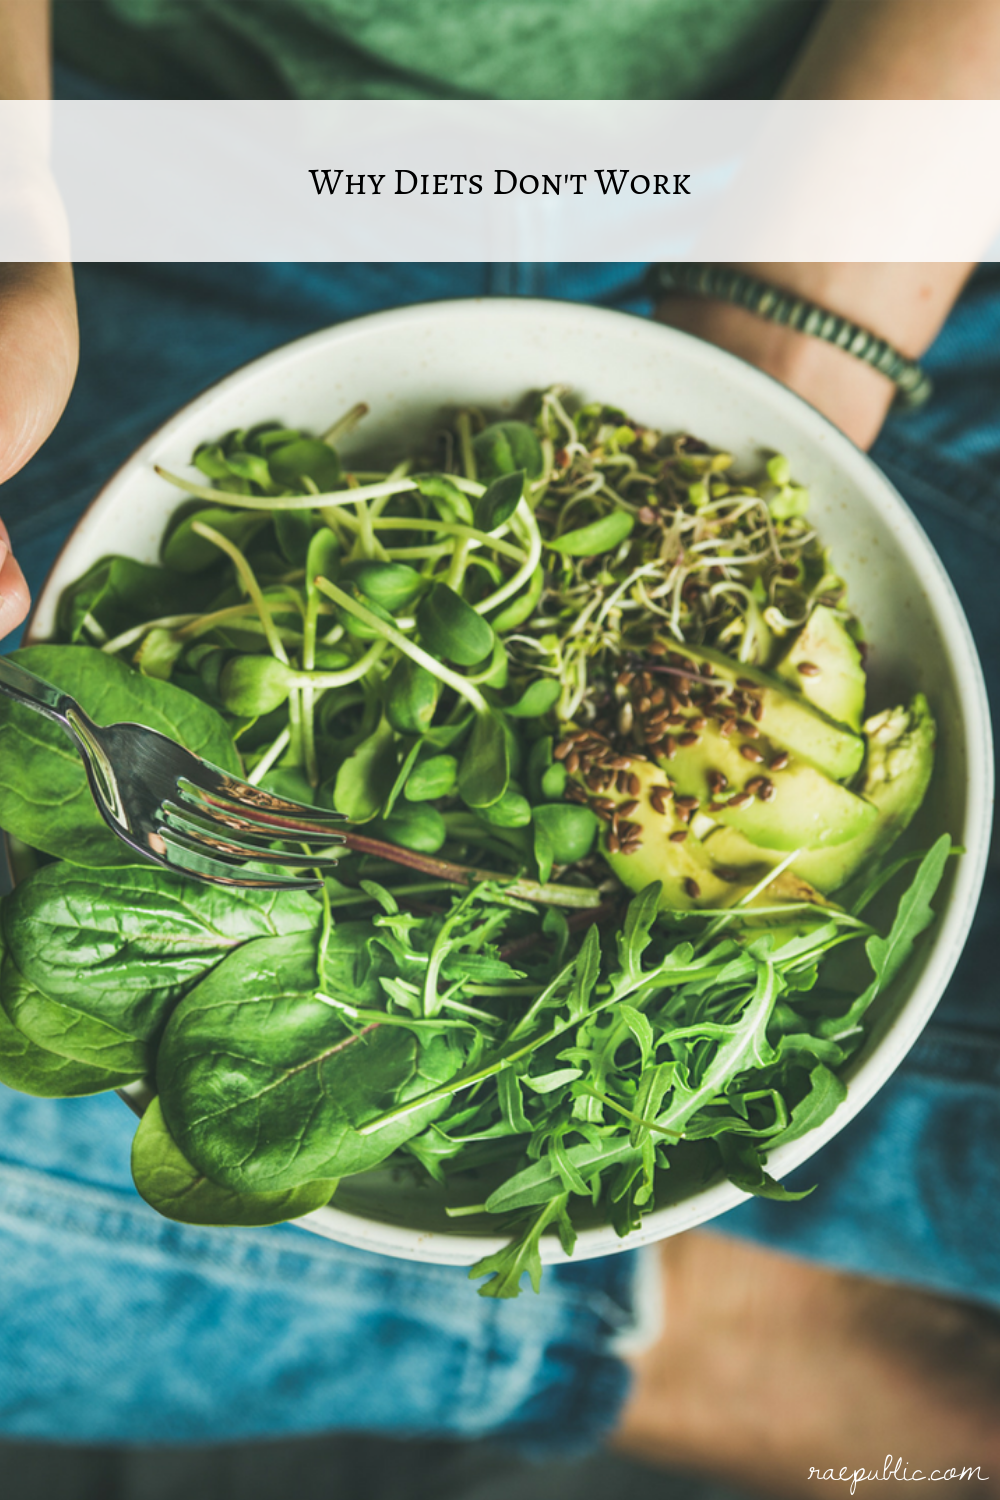 A blog post about why diets don't work from Raepublic's vegan blog.